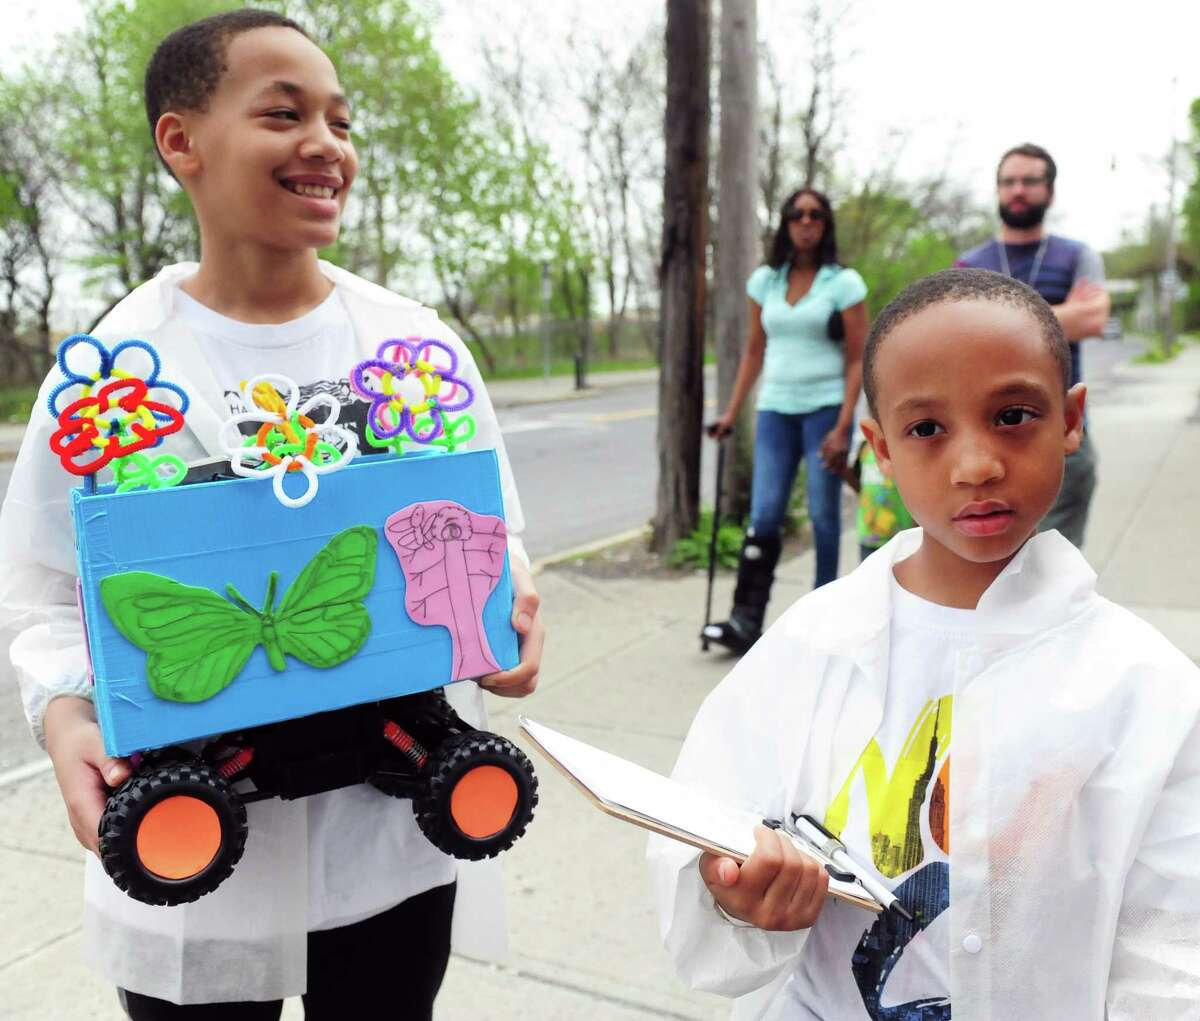 Daivion and Octavion Morris walk with a rover that detects air temperatures and small particles in Albany, N.Y. on April 29, 2017. (Robert Downen / Times Union)